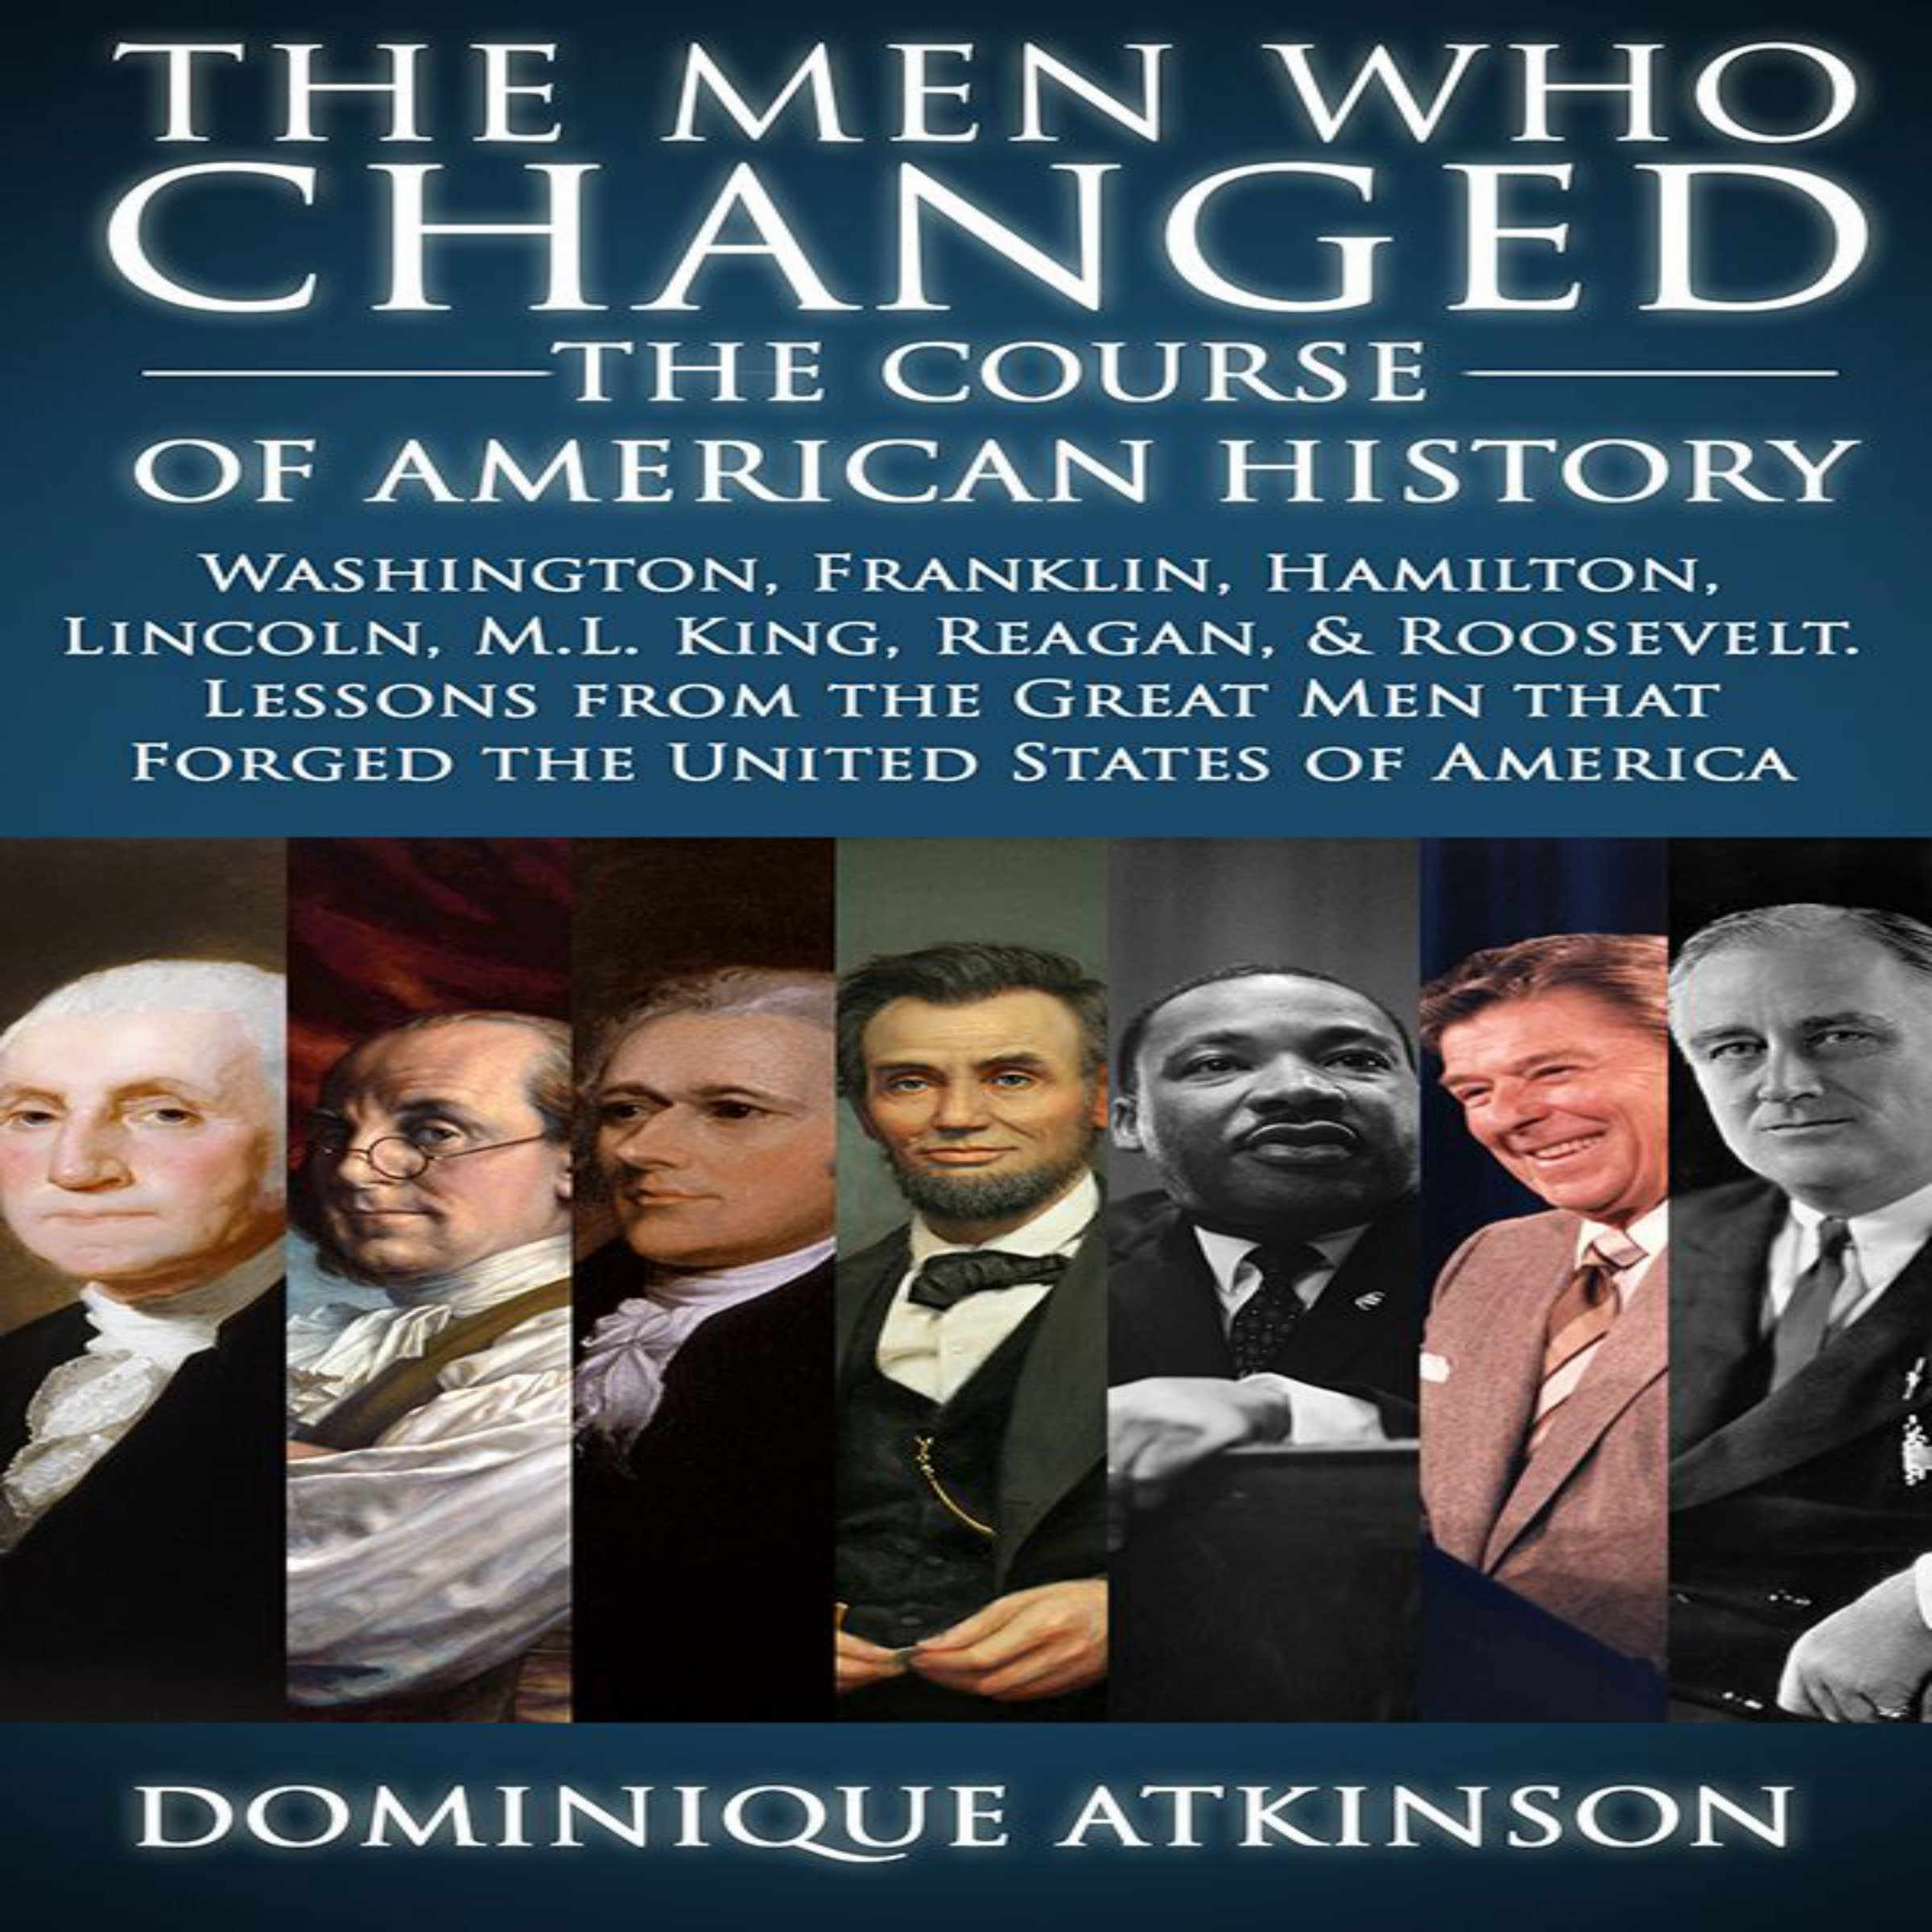 History: The Men Who Changed the Course of American History, 2nd Edition: Washington, Franklin, Hamilton, Lincoln, M.L. King, Reagan, & Roosevelt